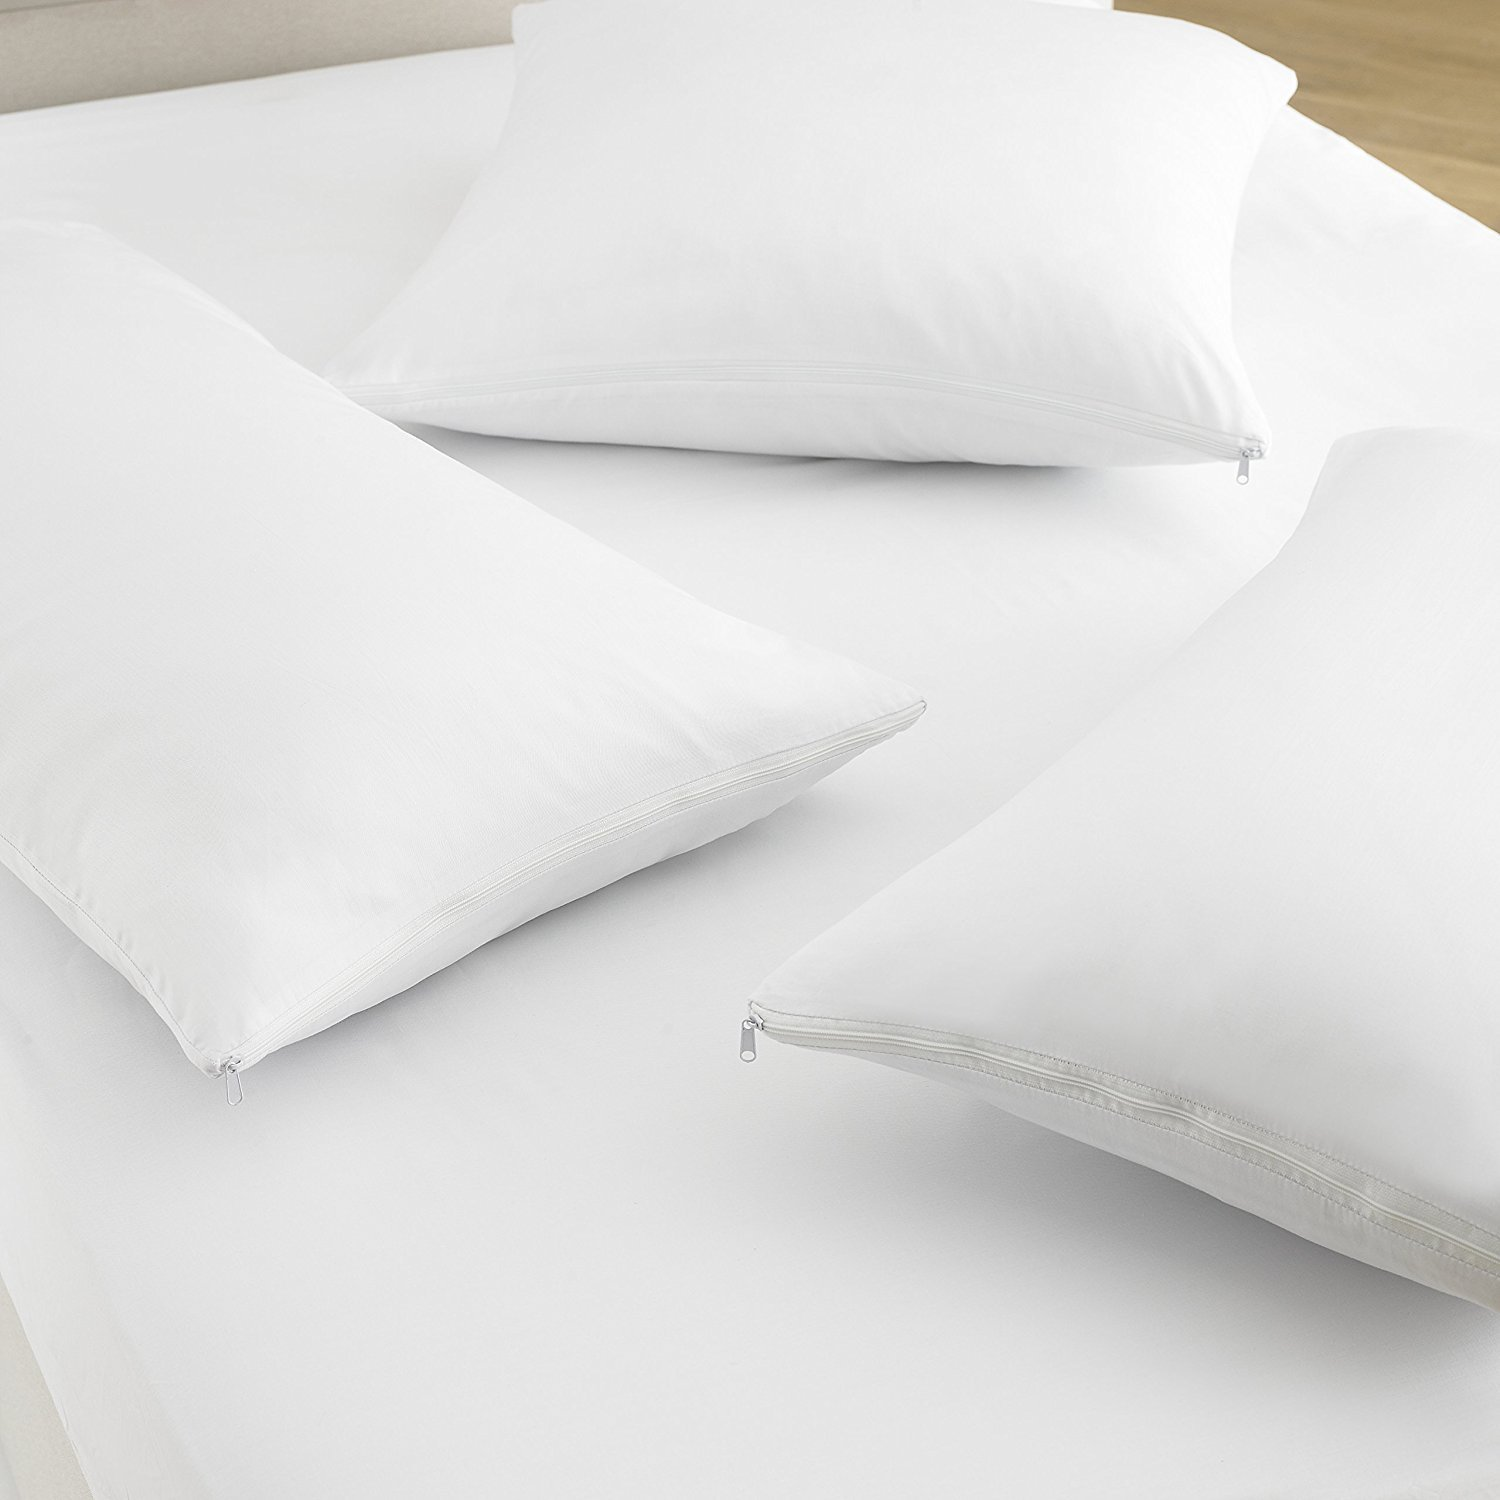 Great Knot 200 Thread Count 100% Cotton Liquid Repellent, Anti-Allergy, Anti-Bacterial Pillow Protector Pair White, Oxford 50x75cm, White)